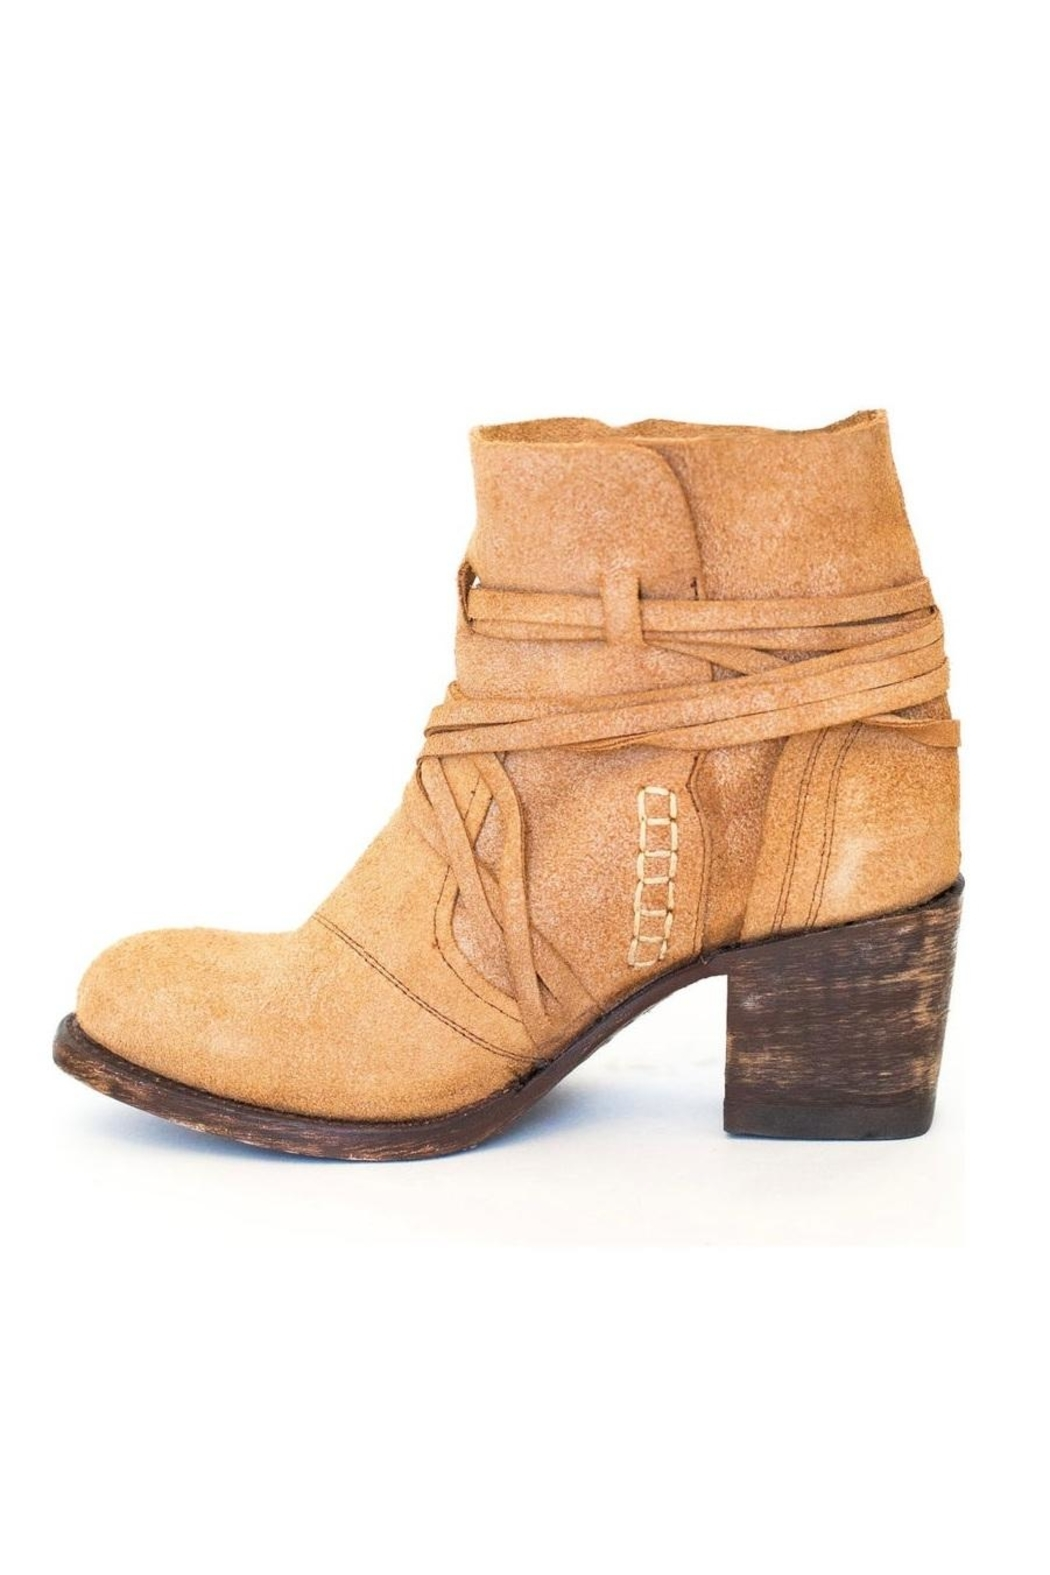 Miss Macie Boots Fringe Suede Bootie - Main Image